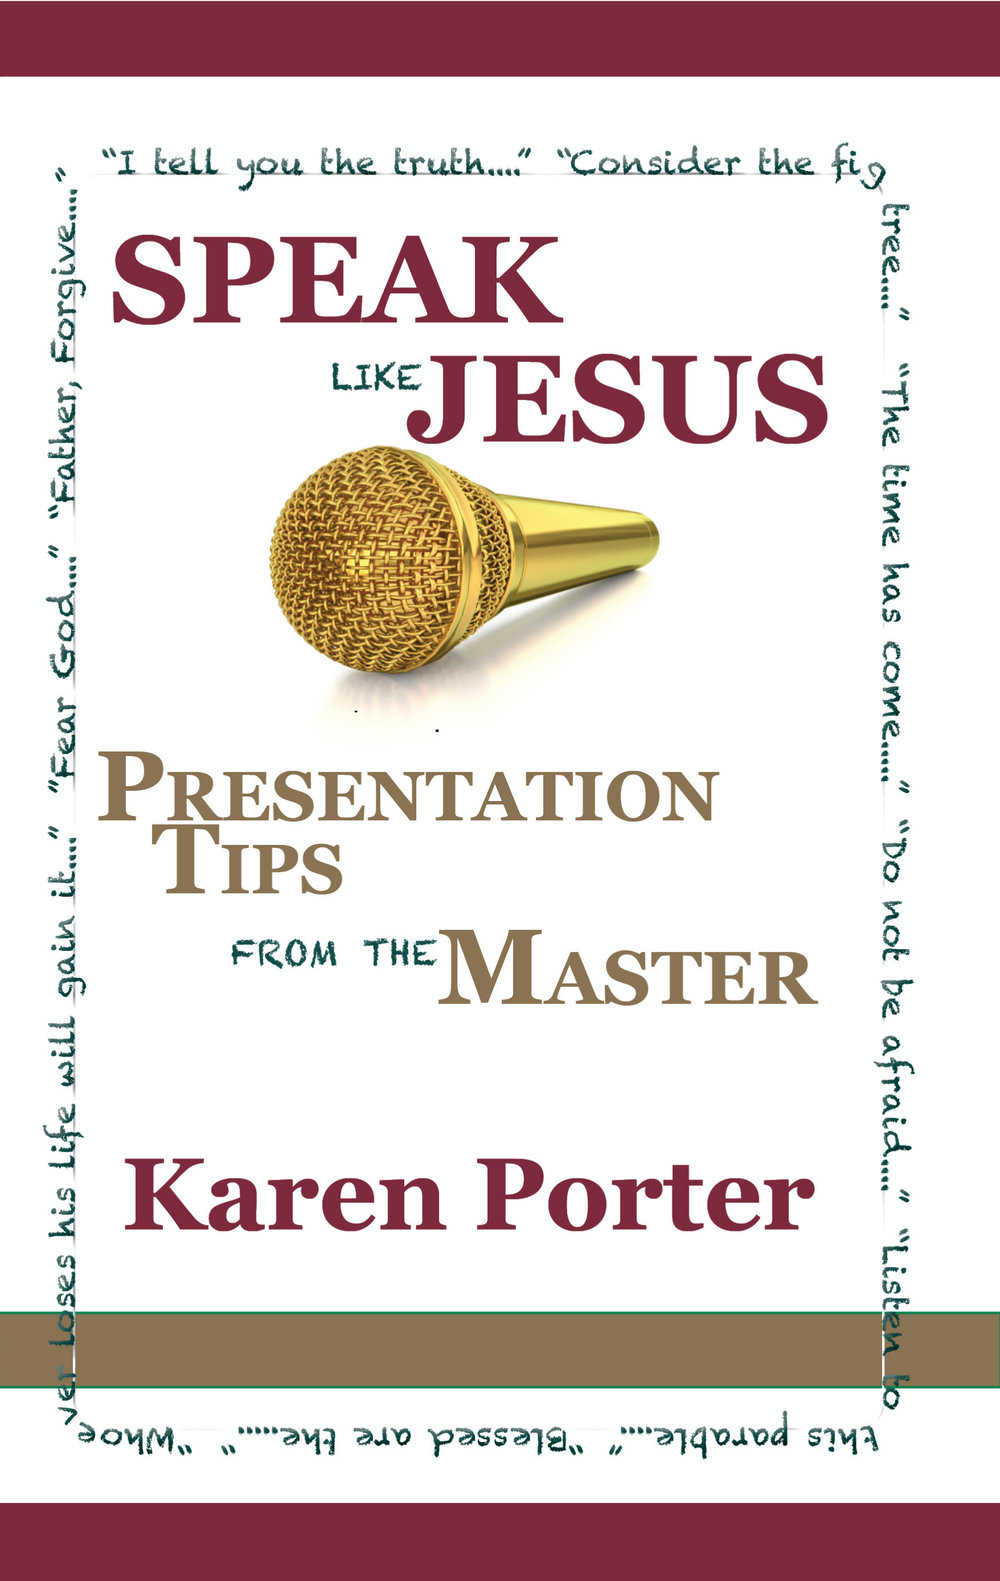 Speak Like Jesus - Presentation Tips from the Master